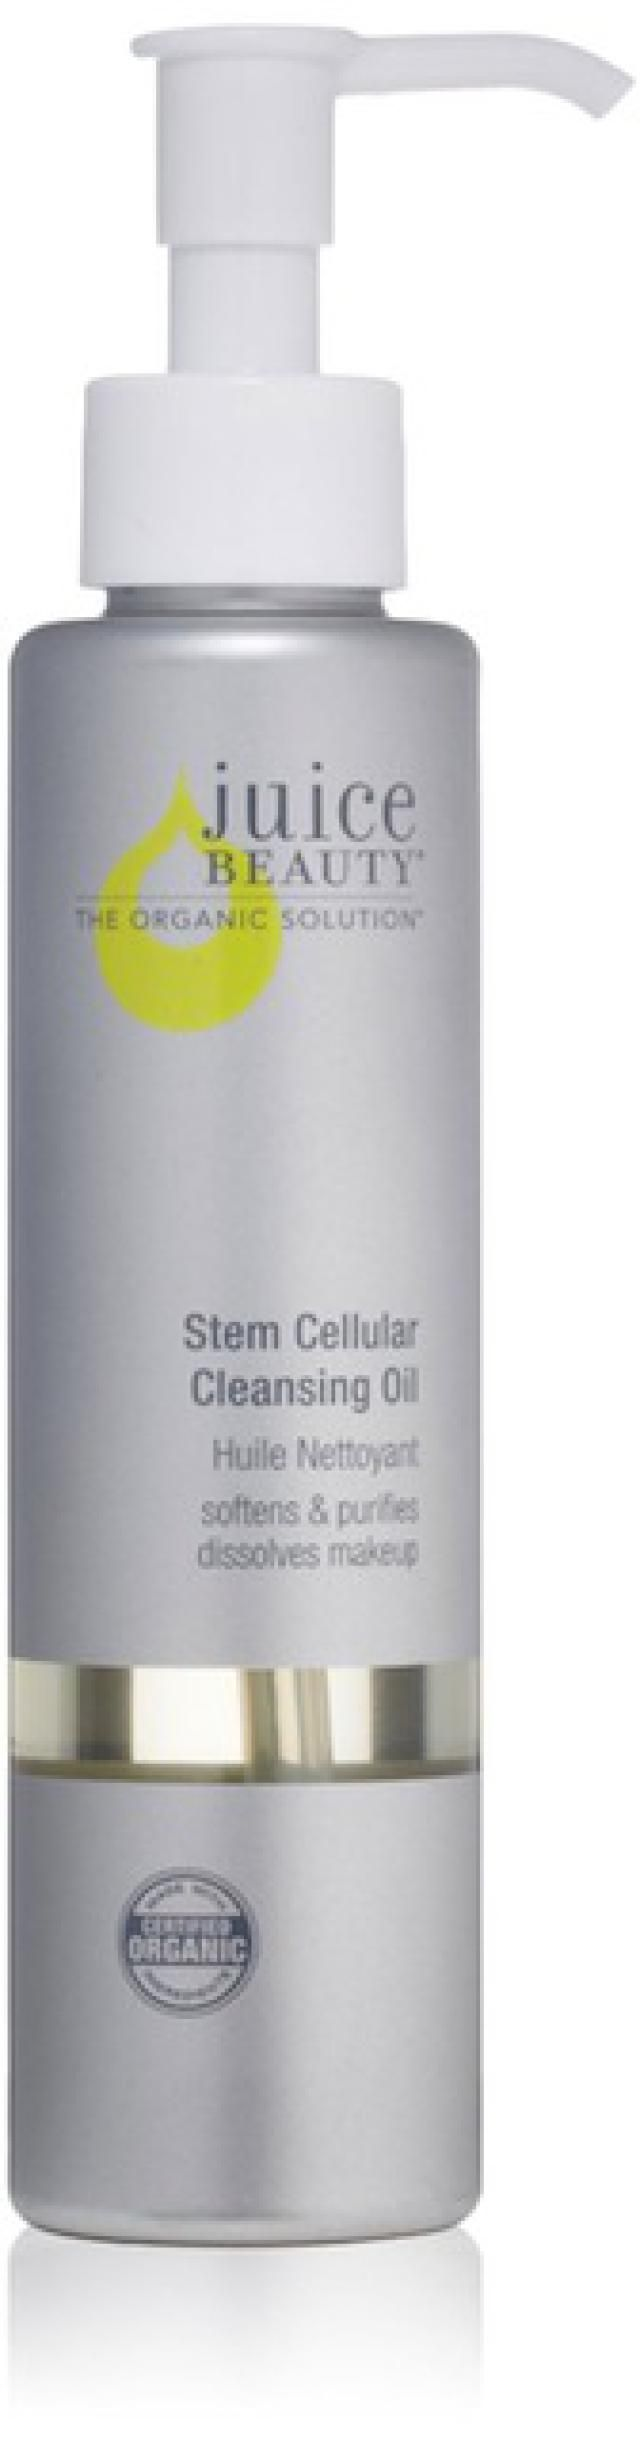 Best Cleansing Oils for the Face: Juice Beauty Stem Cellular Cleansing Oil